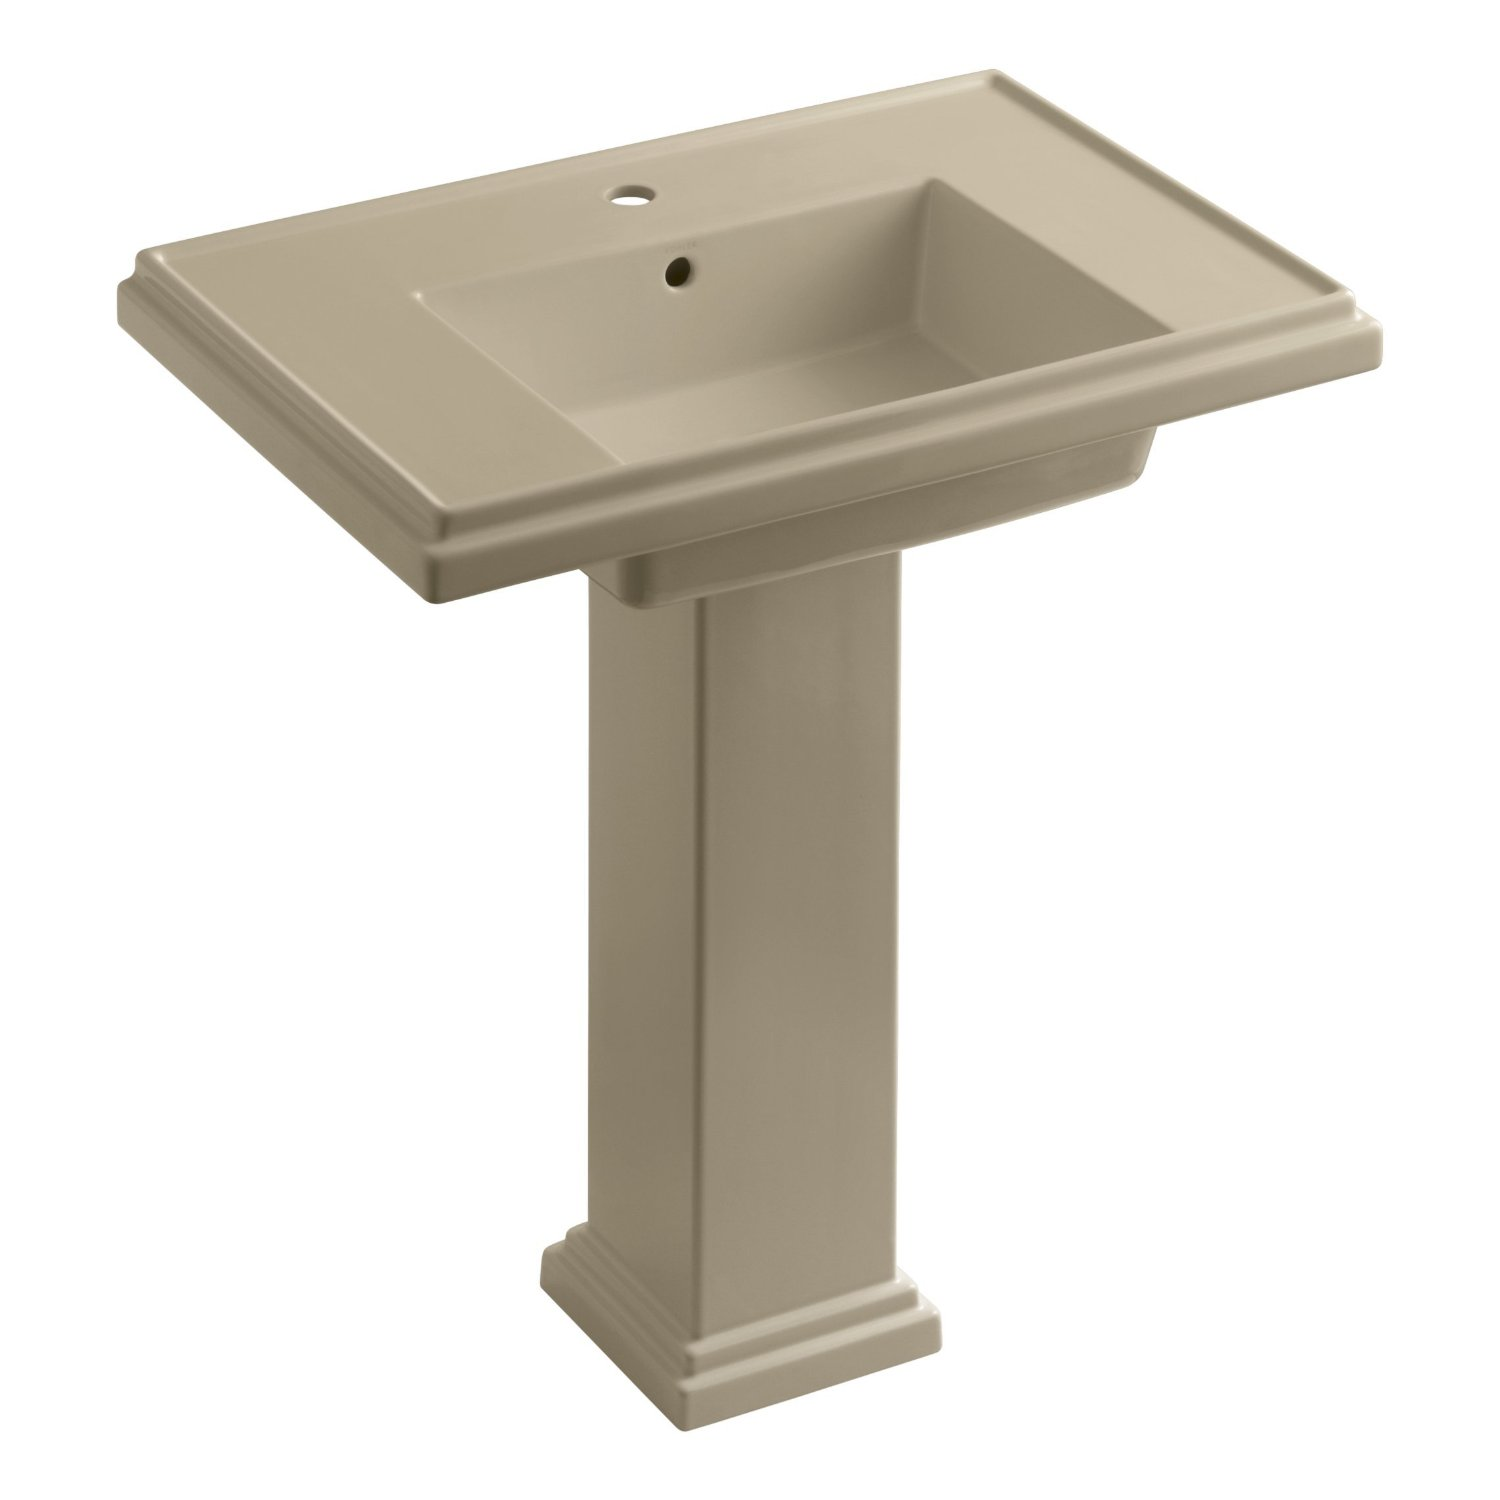 The K-2845-1 is available in 10 colors to match any decor; shown above ...